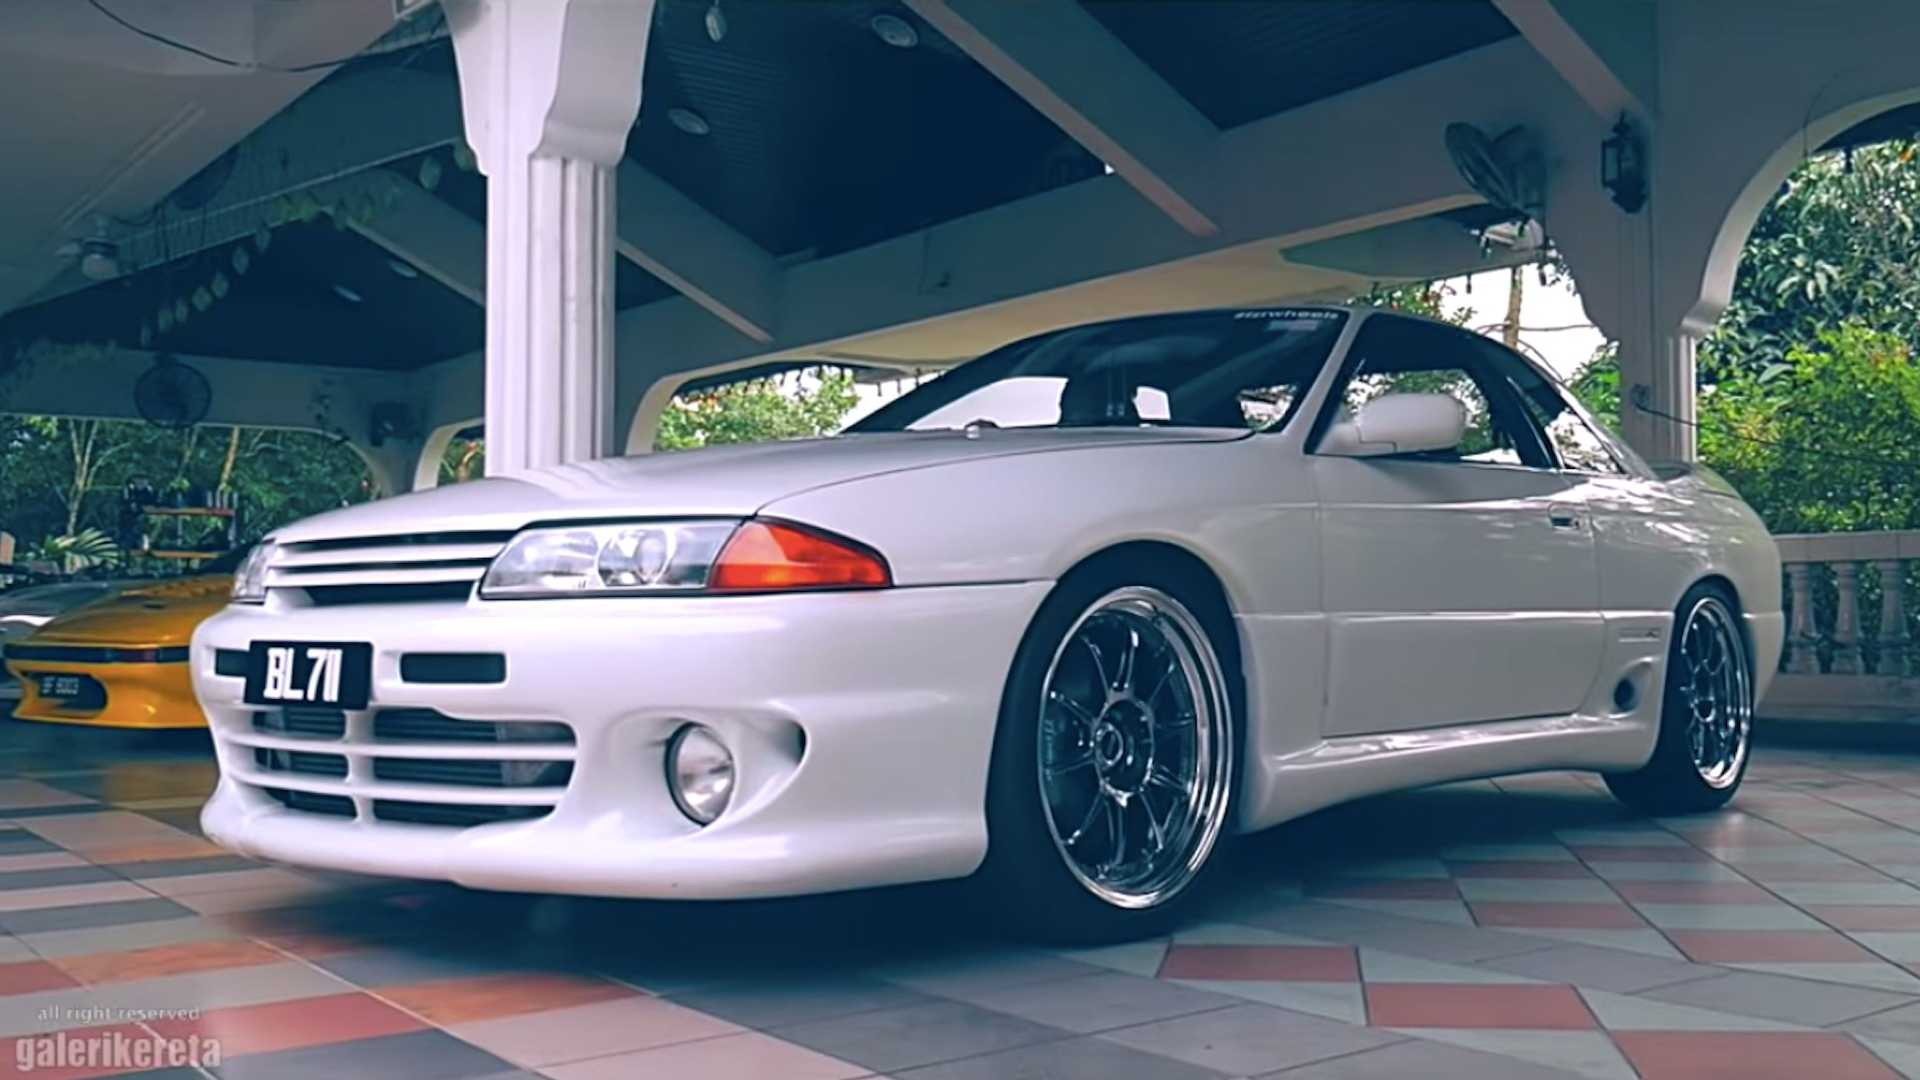 Nissan Skyline R32 Hks Zero R Is Rarer Than Most Exotic Cars